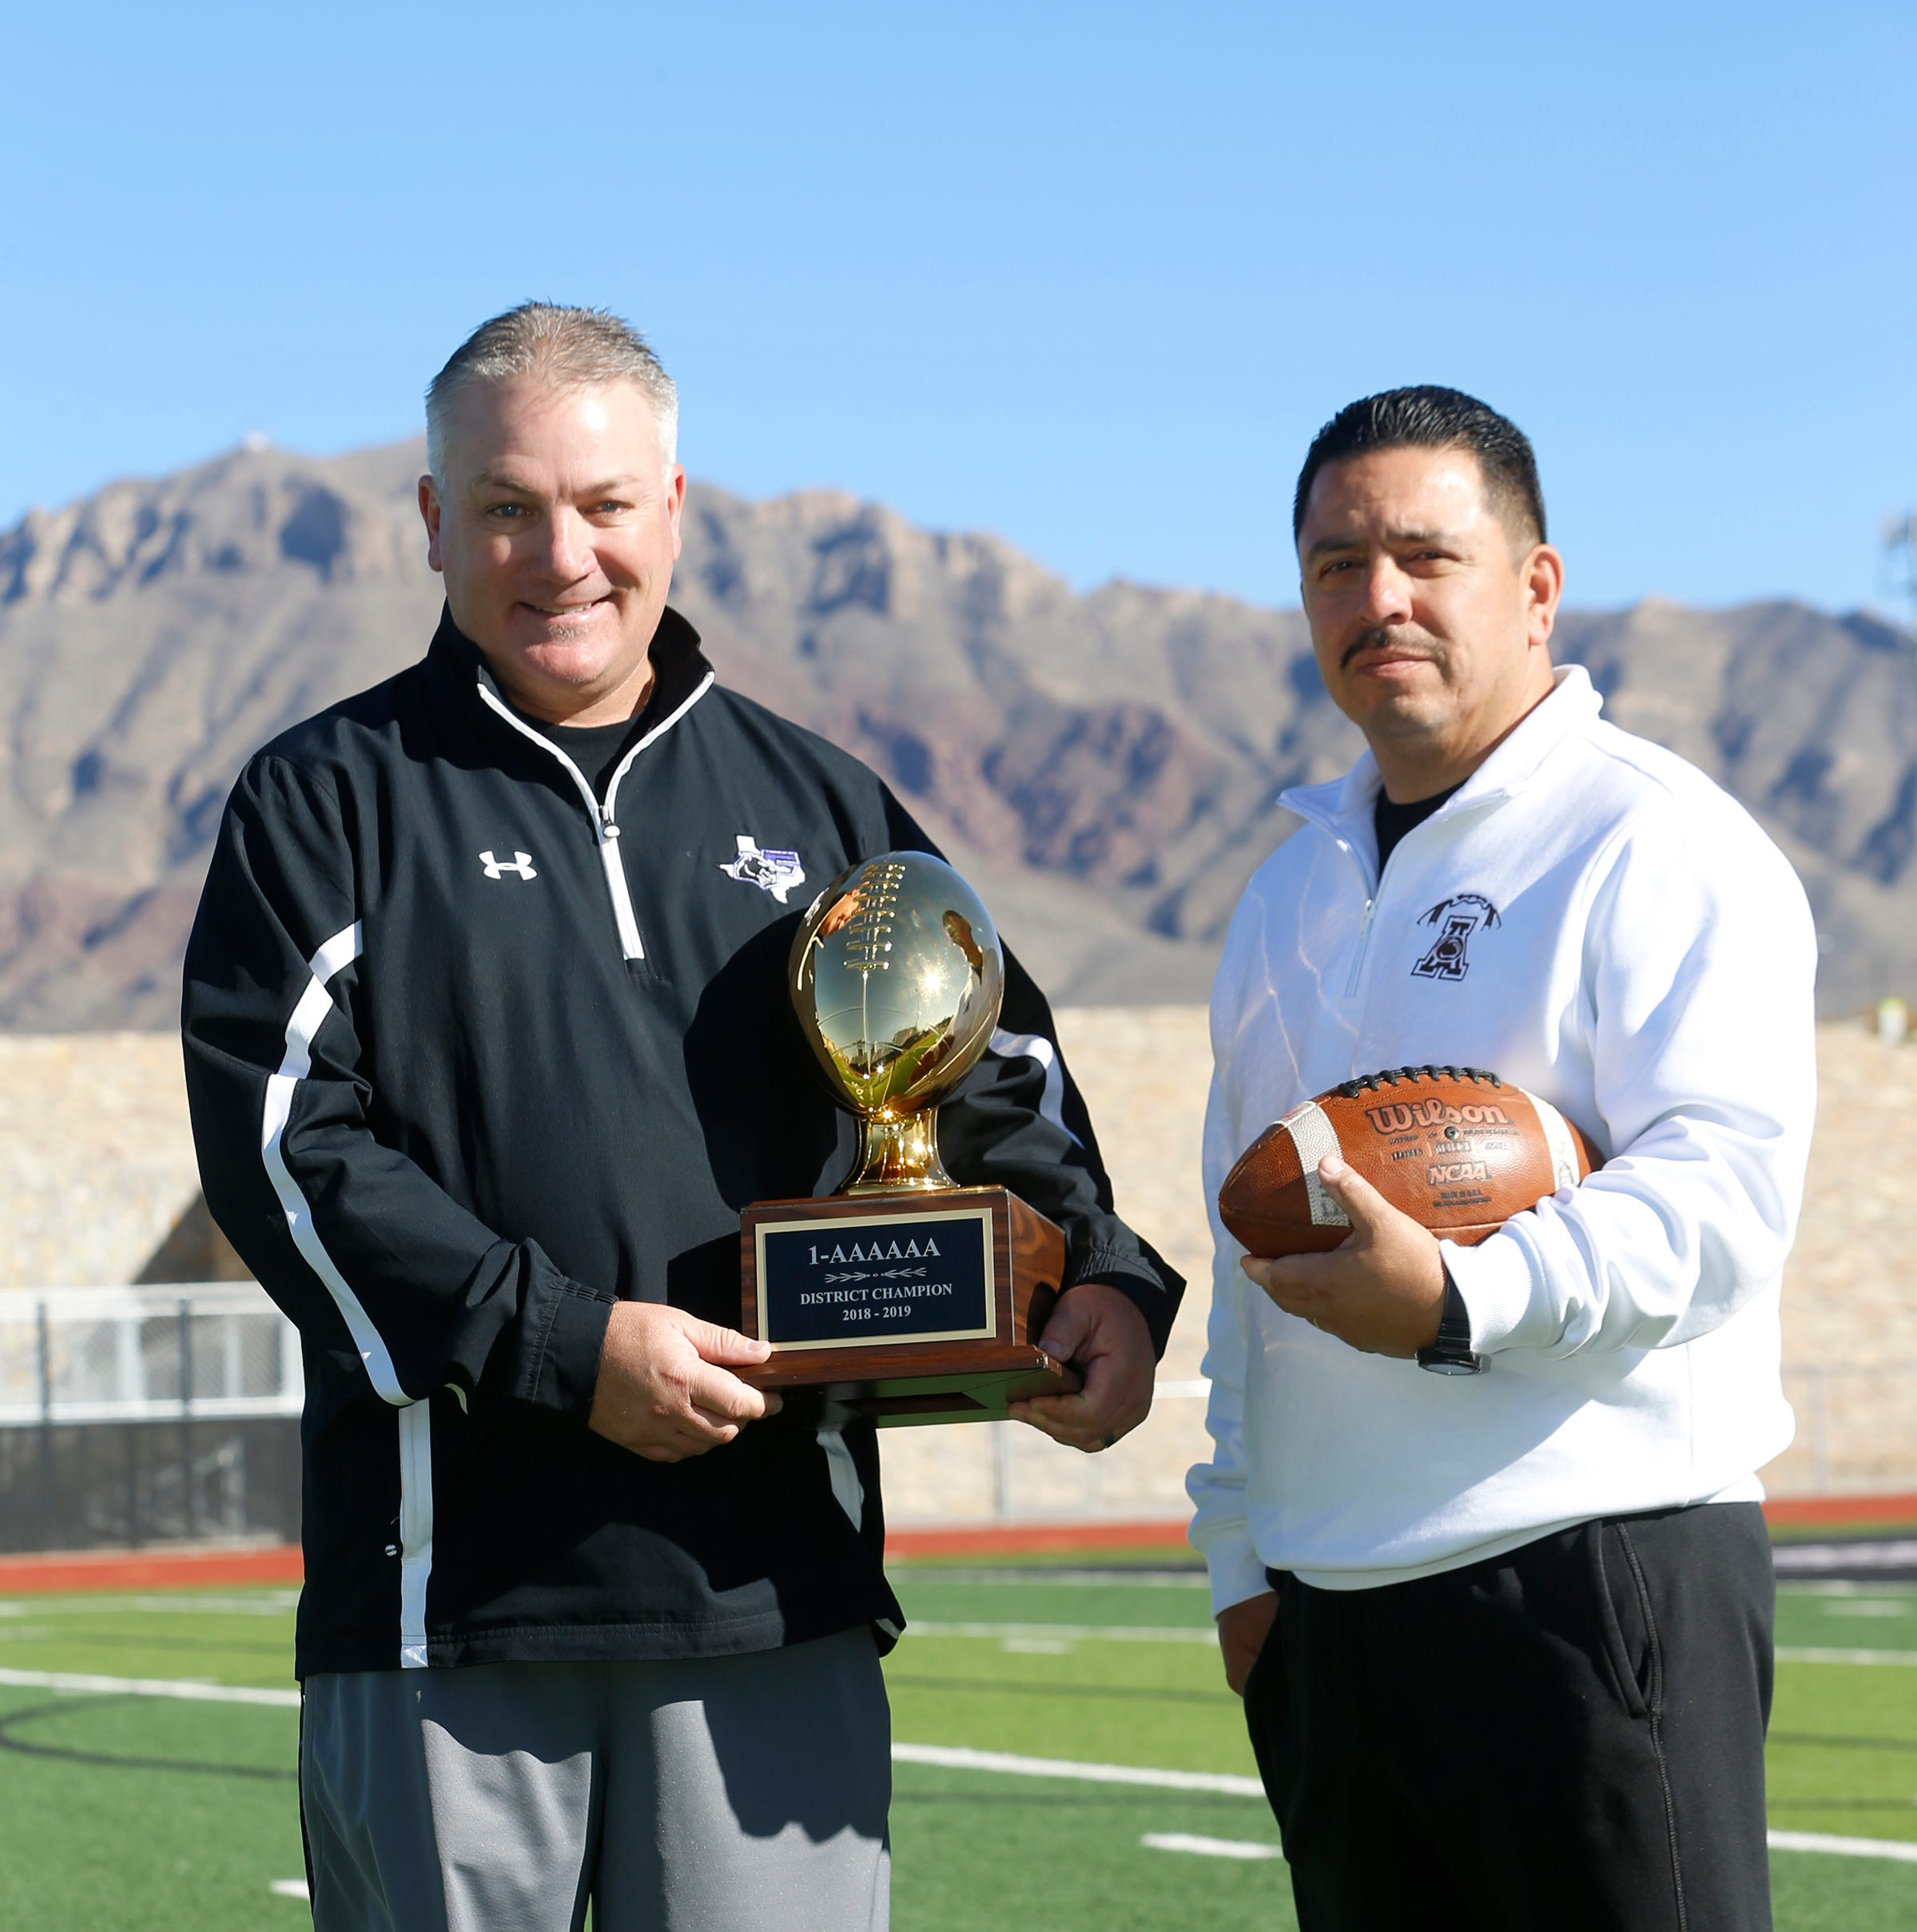 The 2018 El Paso Times All-City Football co-coaches of the year are Franklin High Schools Daren Walker and Austin High Schools Eric Pichardo.